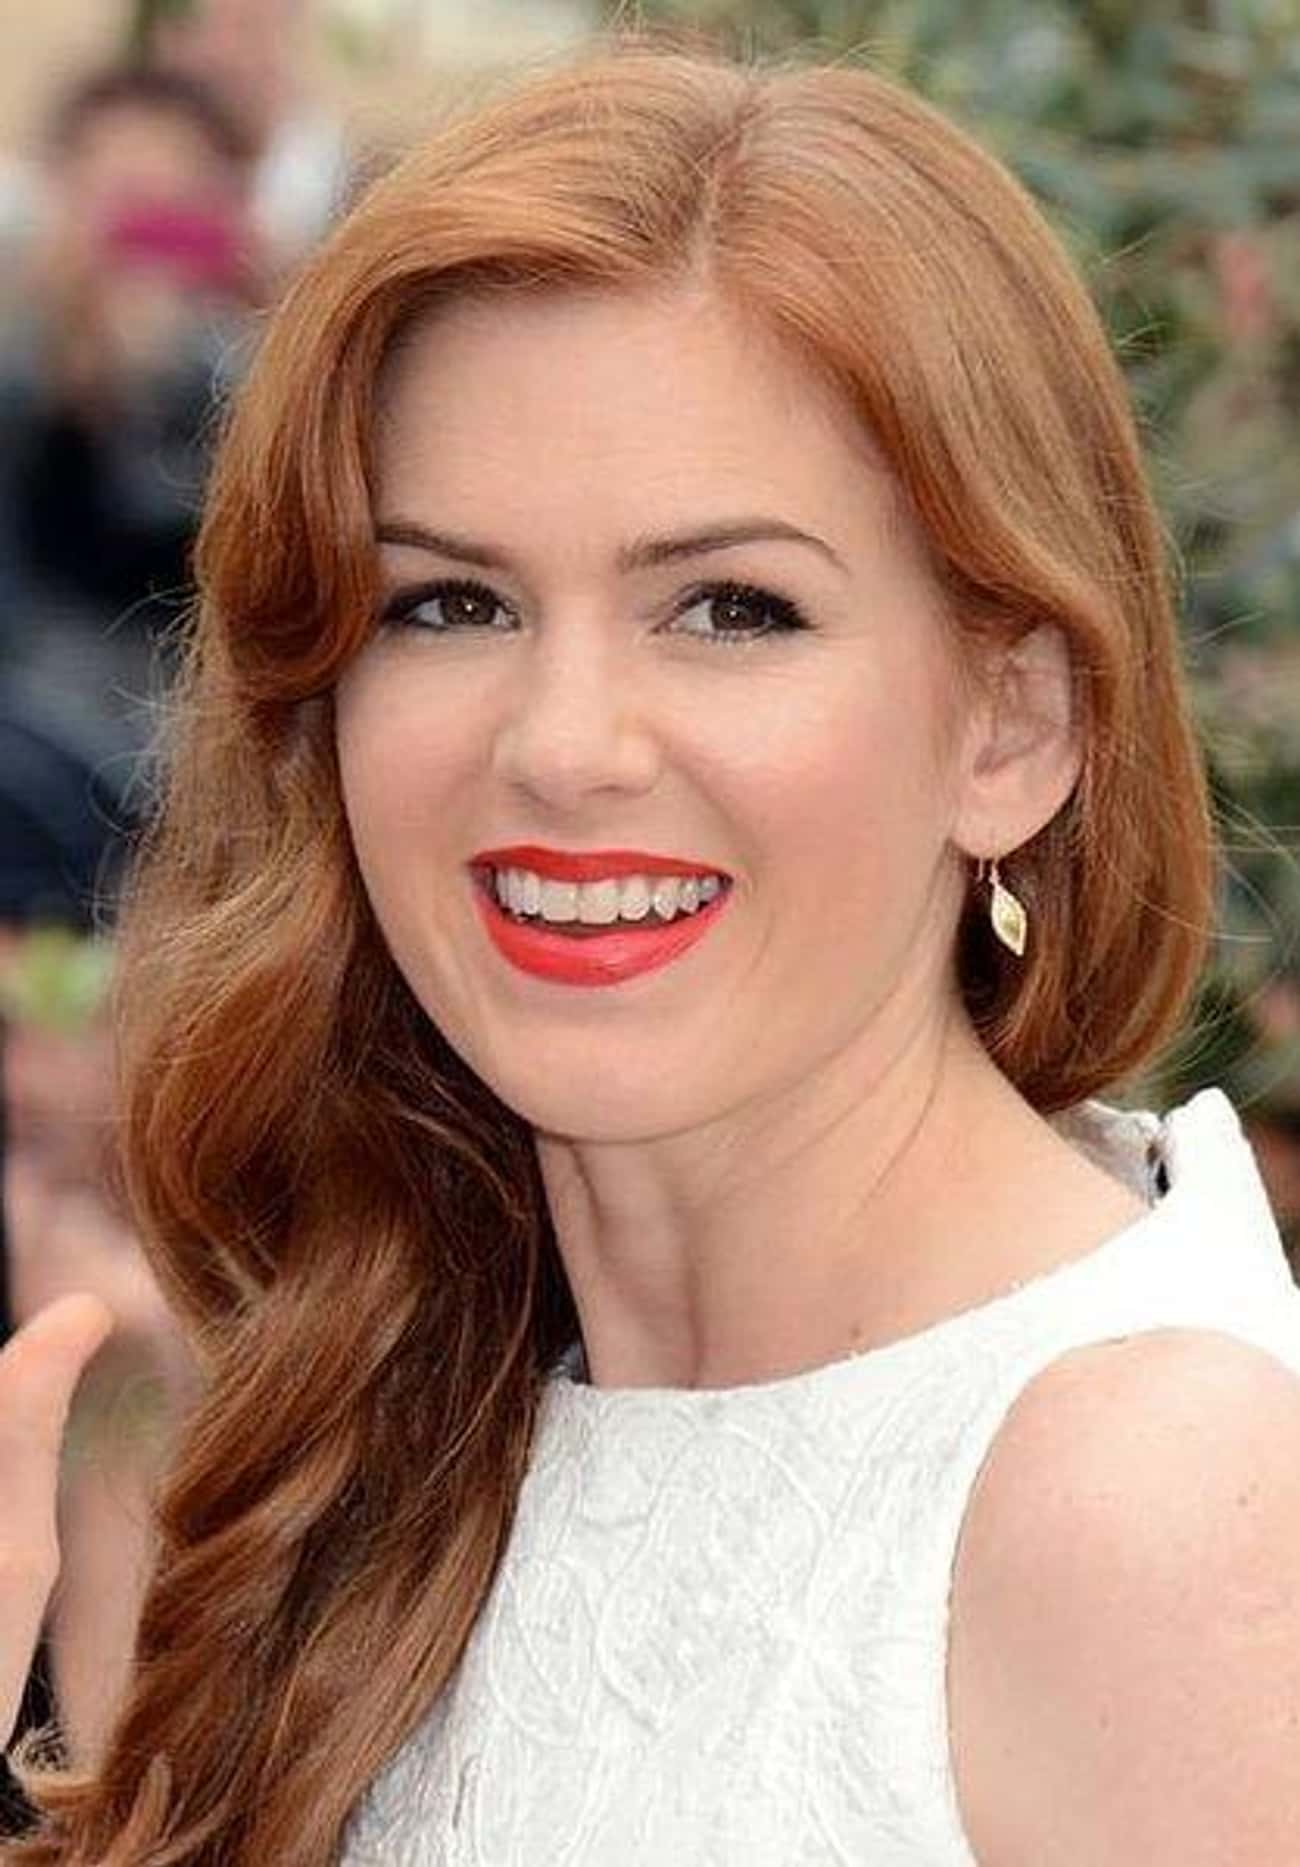 Isla Fisher - Muscat, Oman is listed (or ranked) 3 on the list Celebrities Who Weren't Born Where You Think